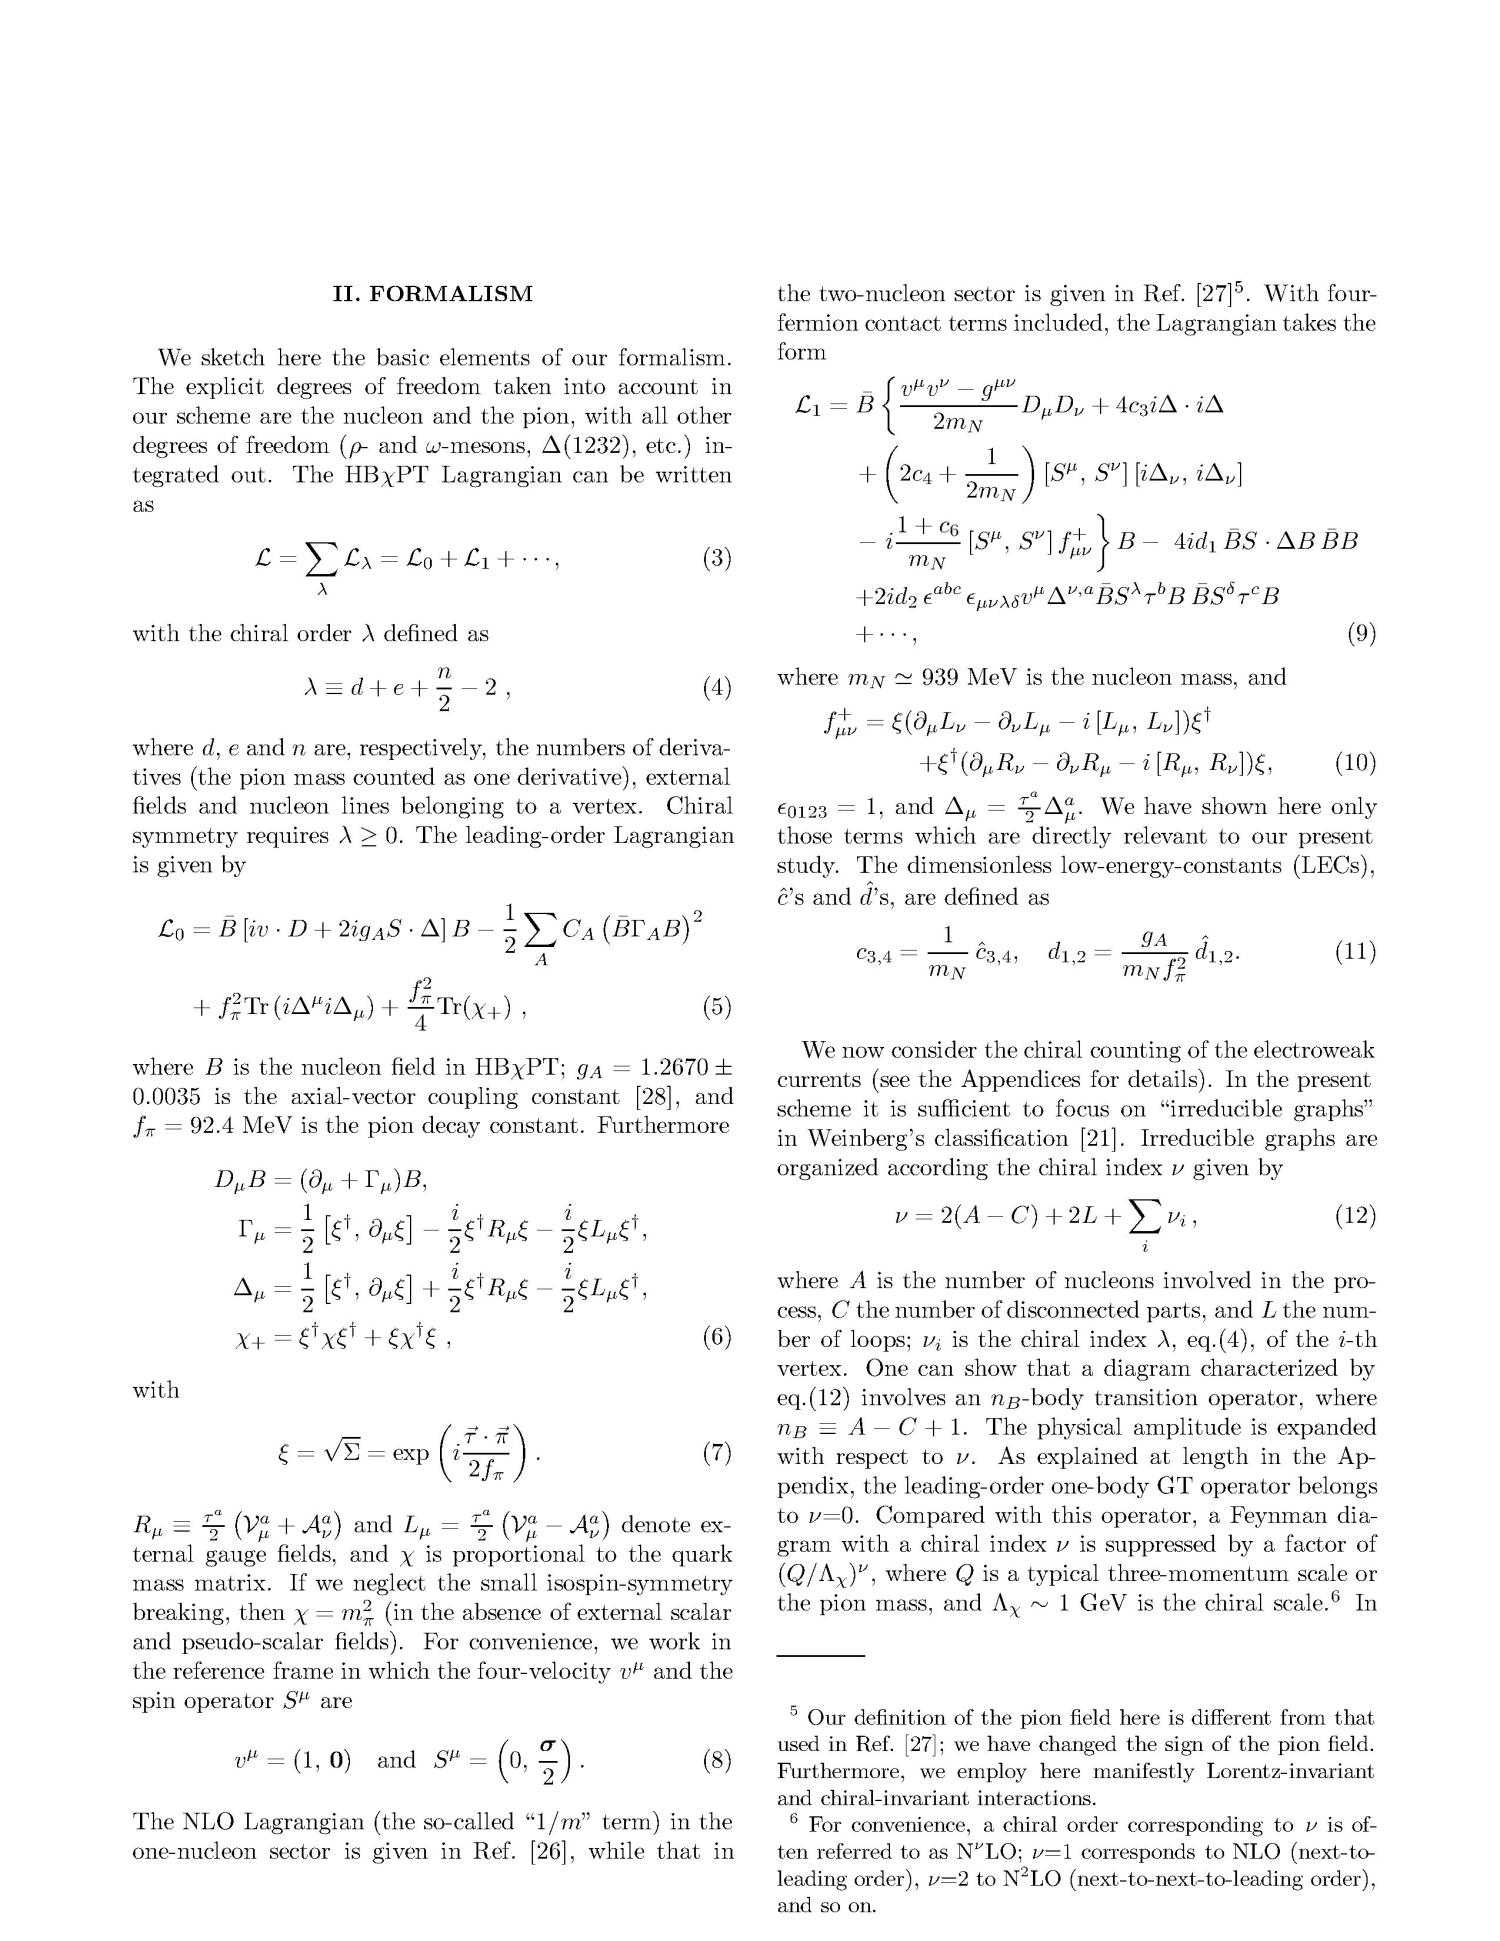 Parameter-free effective field theory calculation for the solar proton-fusion and hep processes                                                                                                      [Sequence #]: 4 of 22